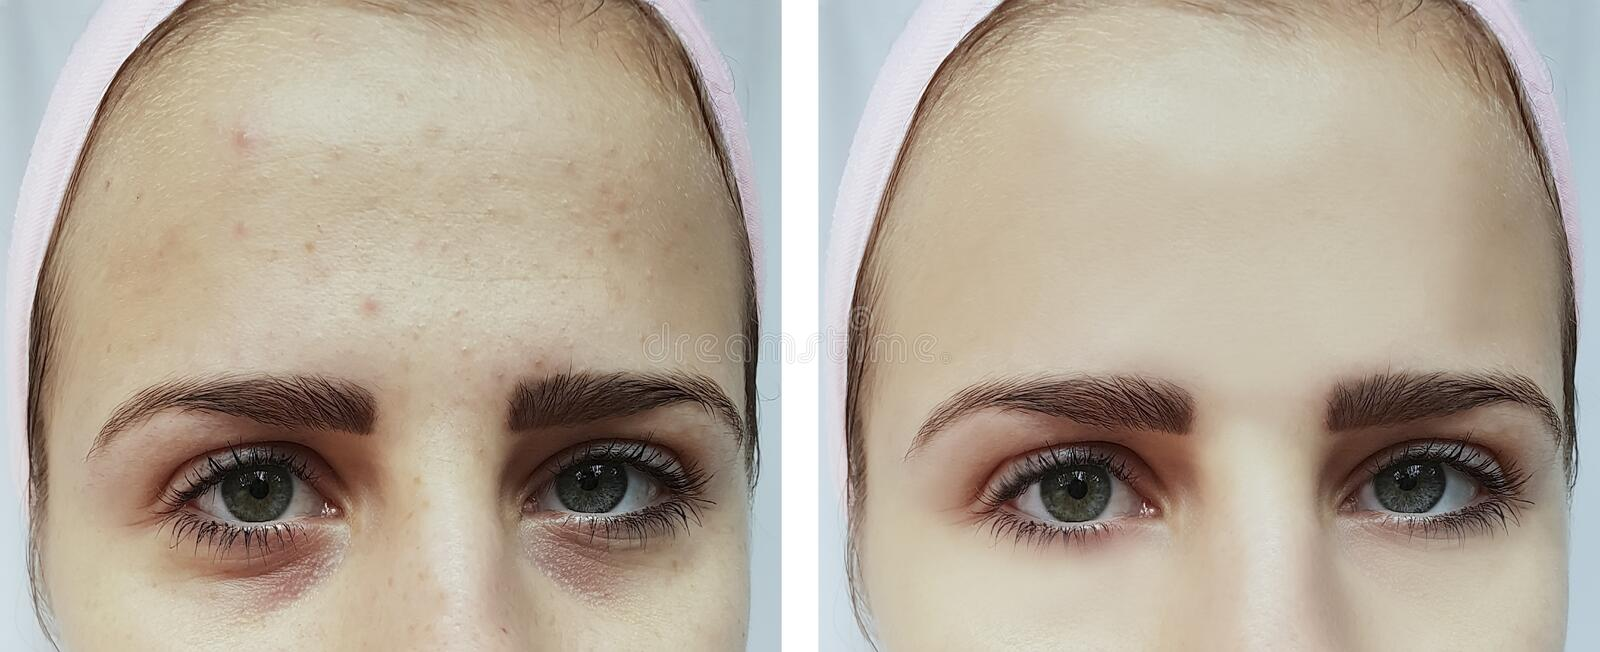 Beautiful young girl acne, bruises under the eyes before and after procedures royalty free stock photos